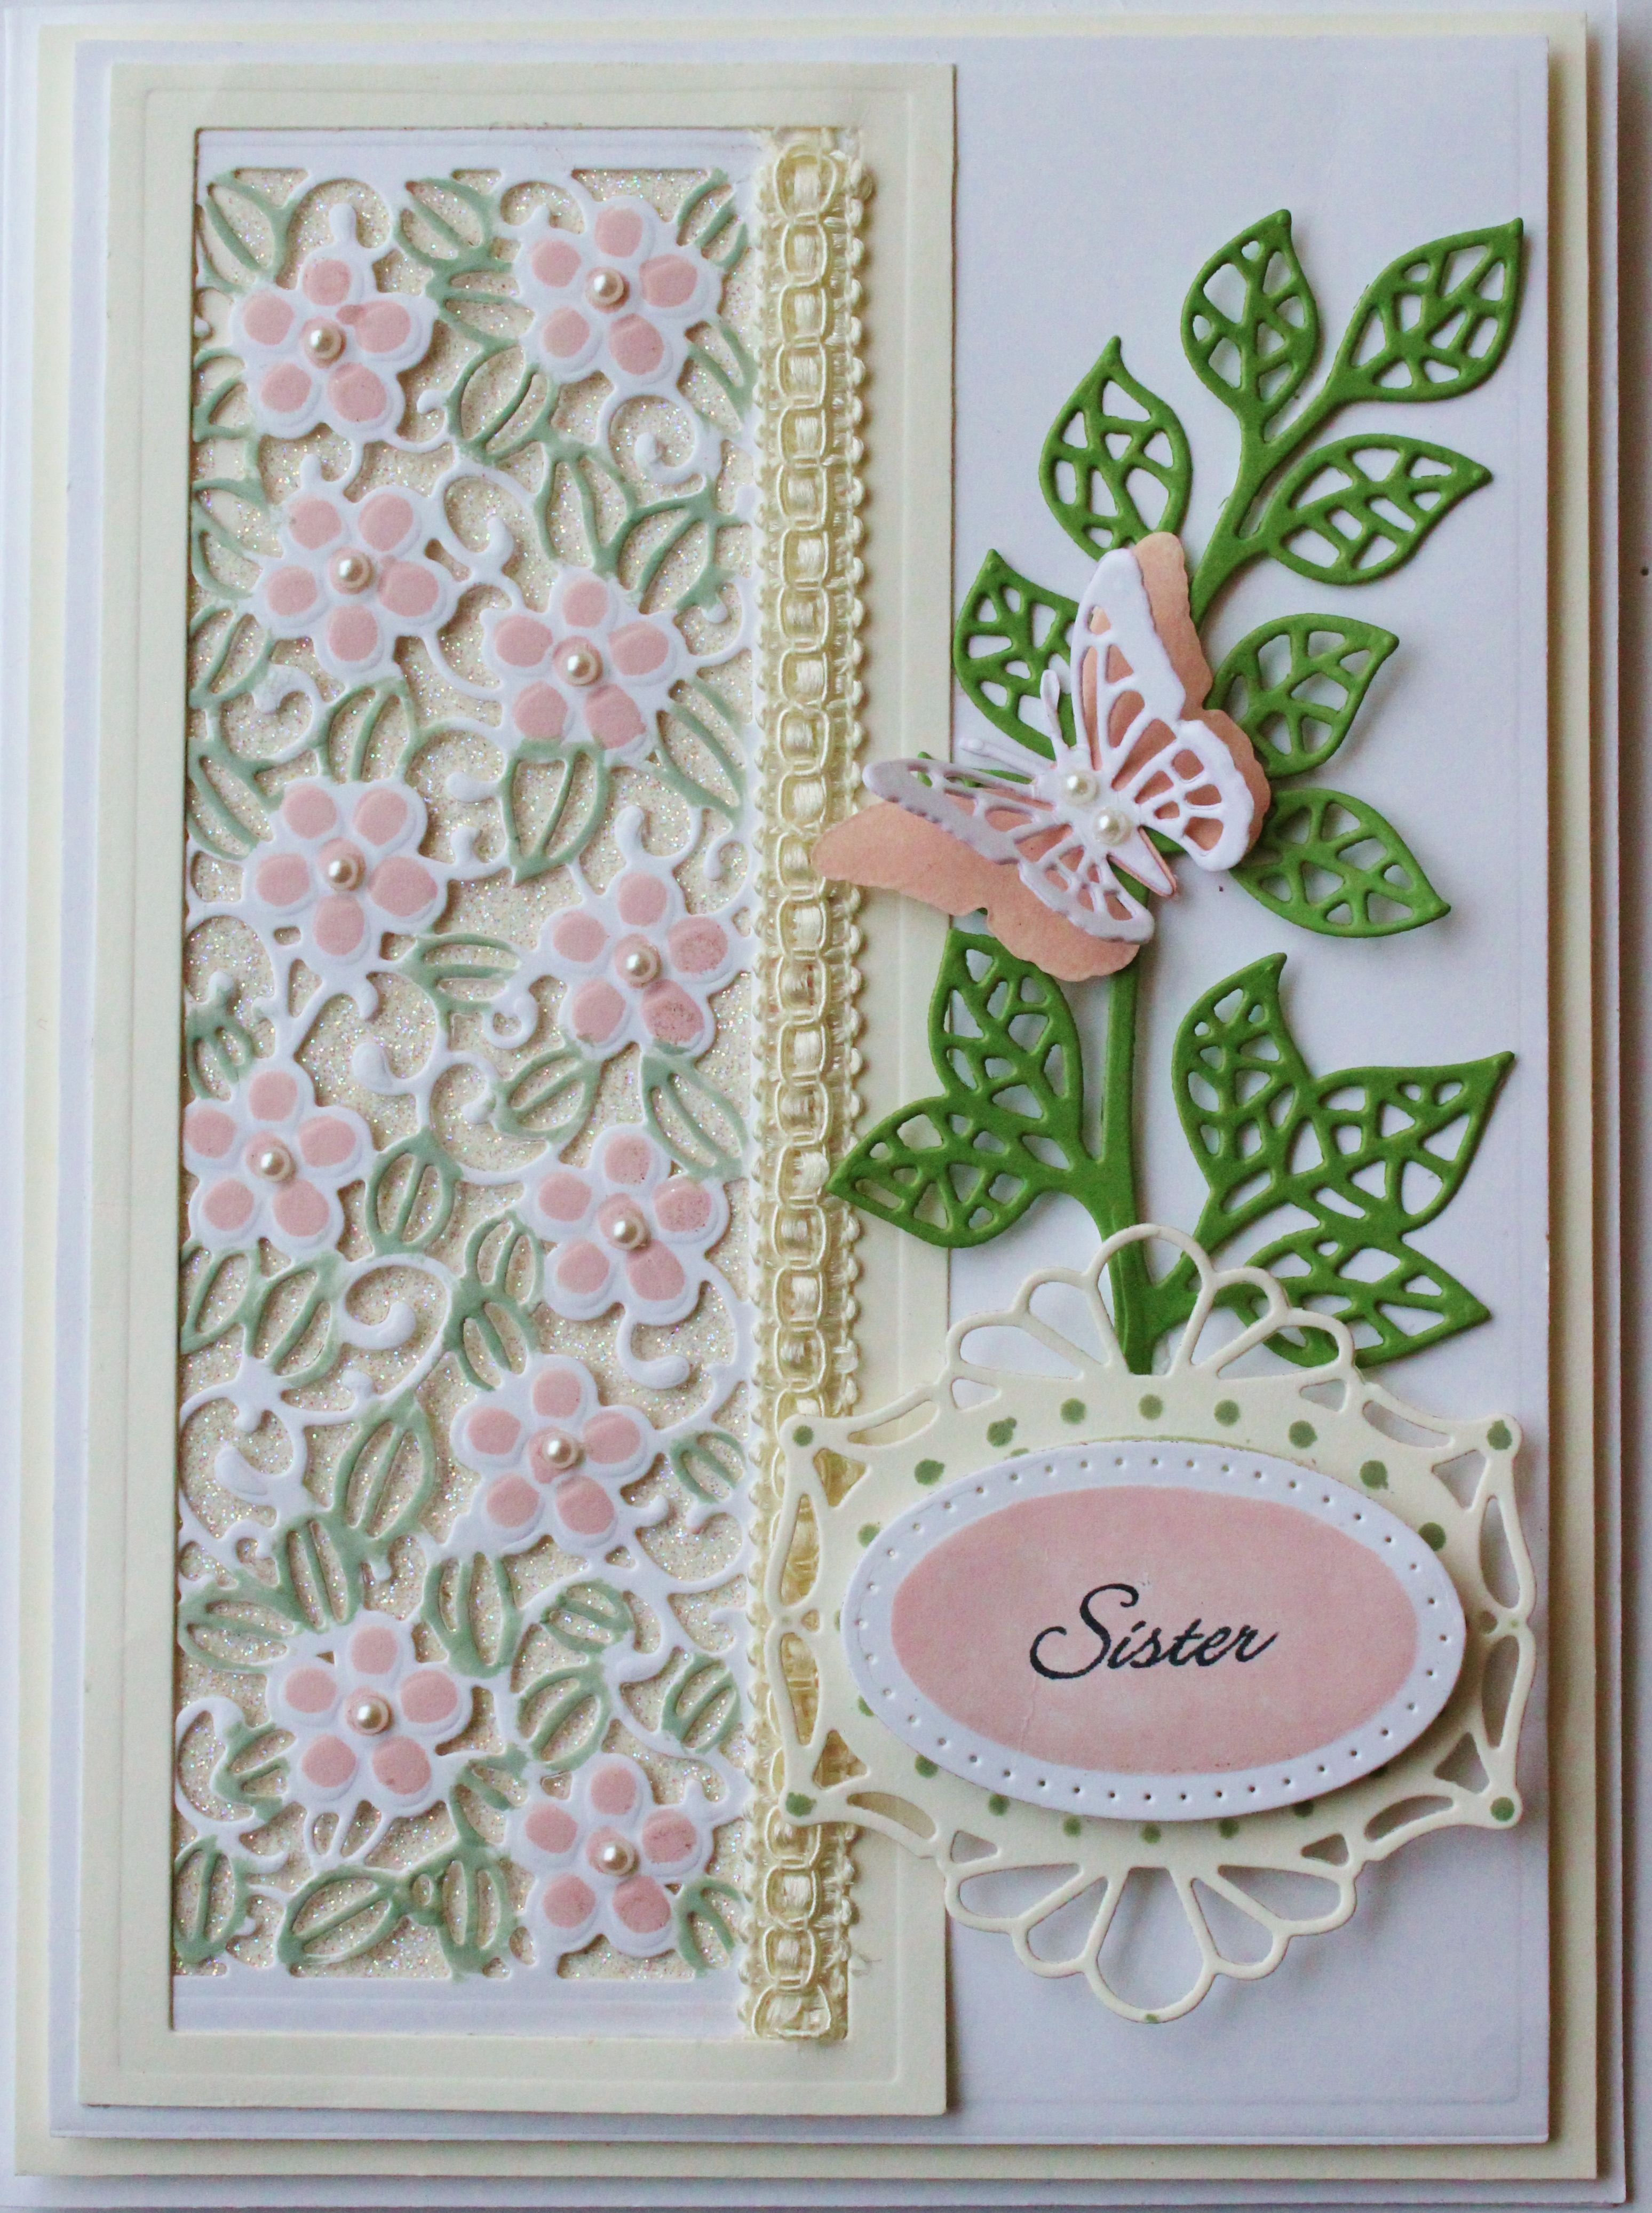 Birthday Card For Sister Design And Products By Sue Wilson Designs